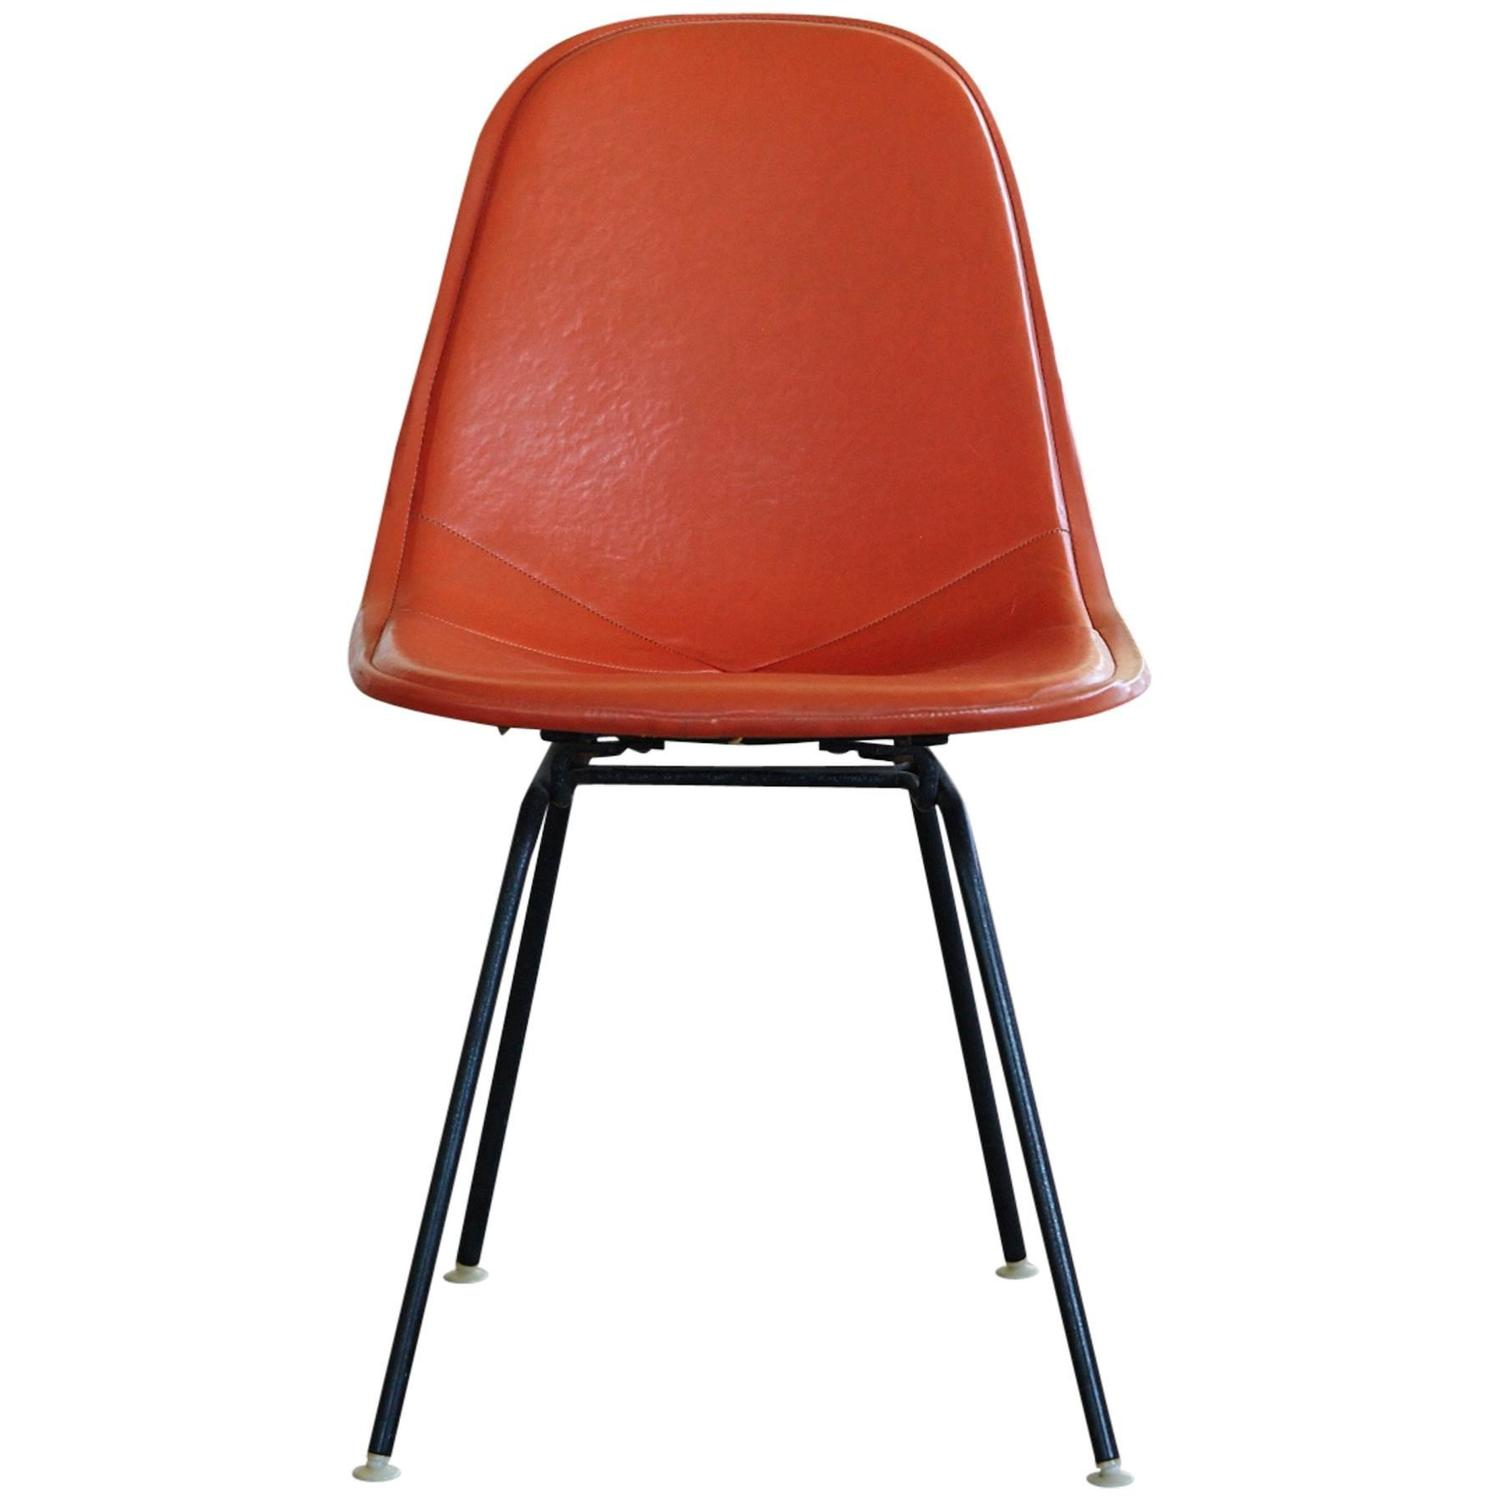 Original eames chair - Original Eames Dkx 1 Side Chair In Orange Leather For Herman Miller 1960s